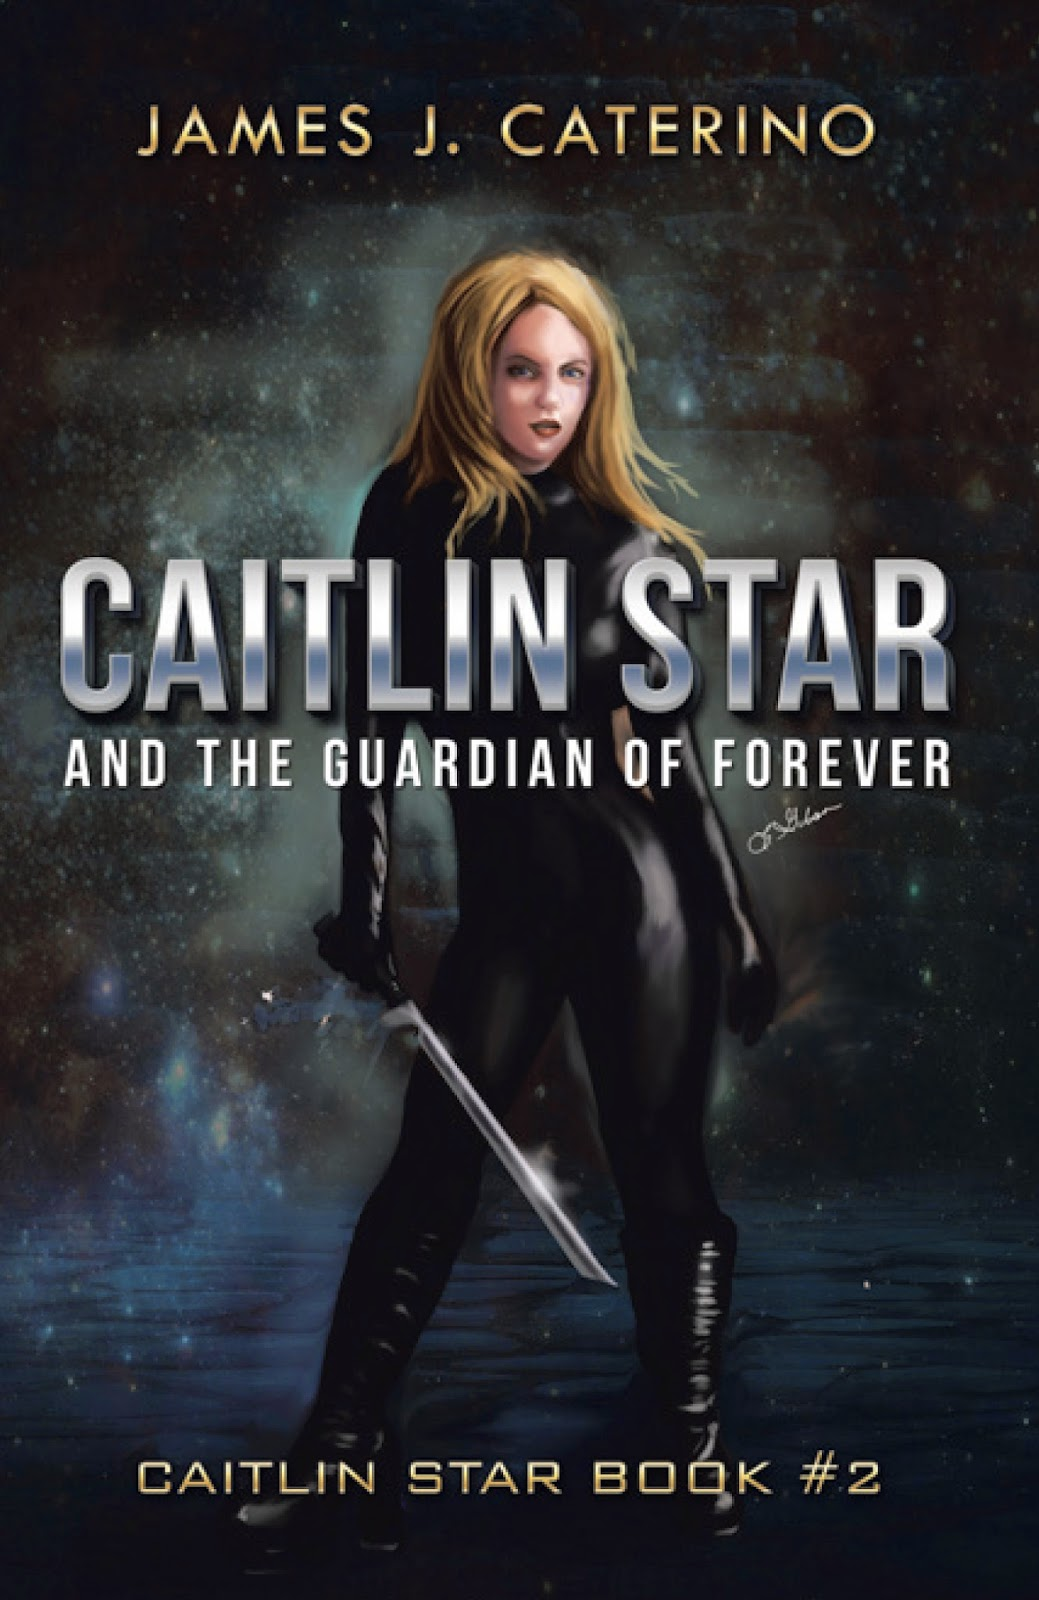 http://www.amazon.com/Caitlin-Star-Guardian-Forever-book/dp/1491739258/ref=cm_cr_pr_product_top